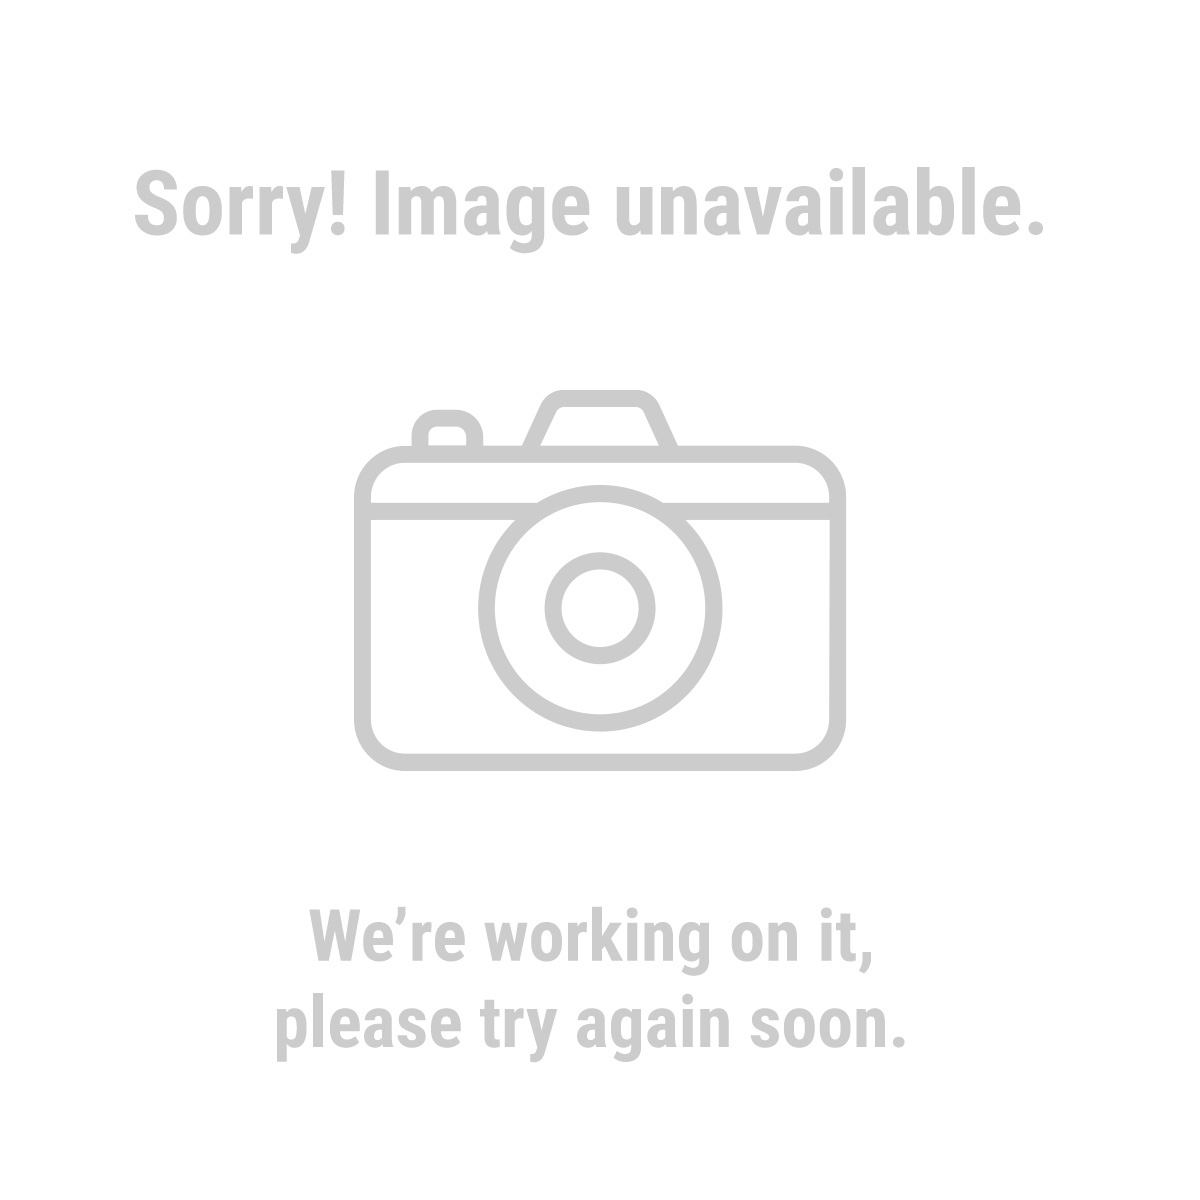 98392 Wet Paint Sign